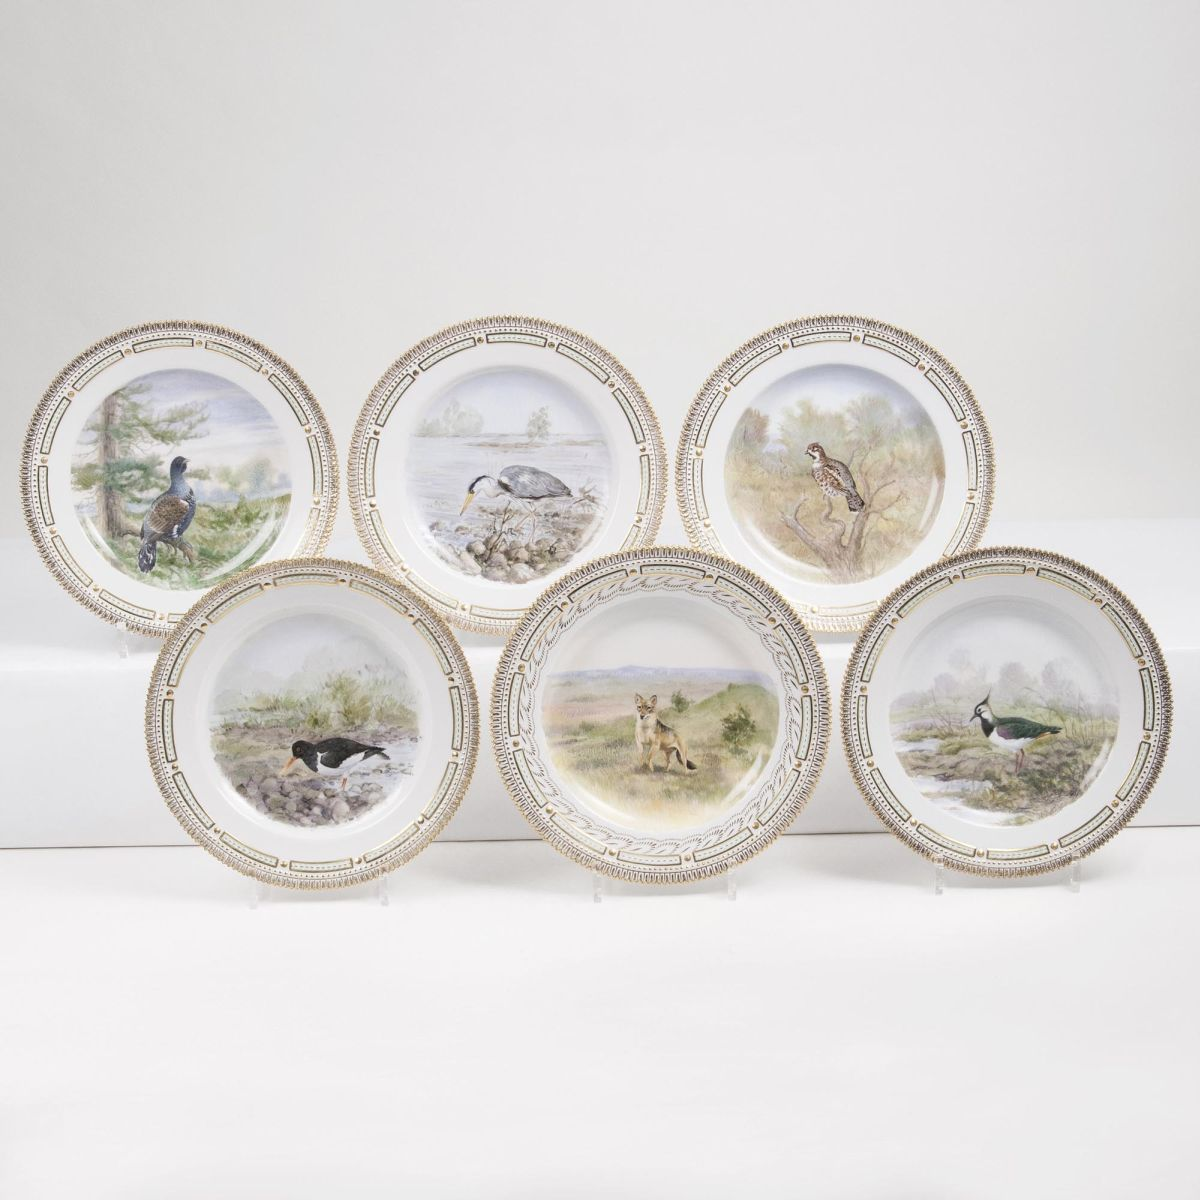 A Set of 6 Flora Danica Dinner Plates with Birds and Animal